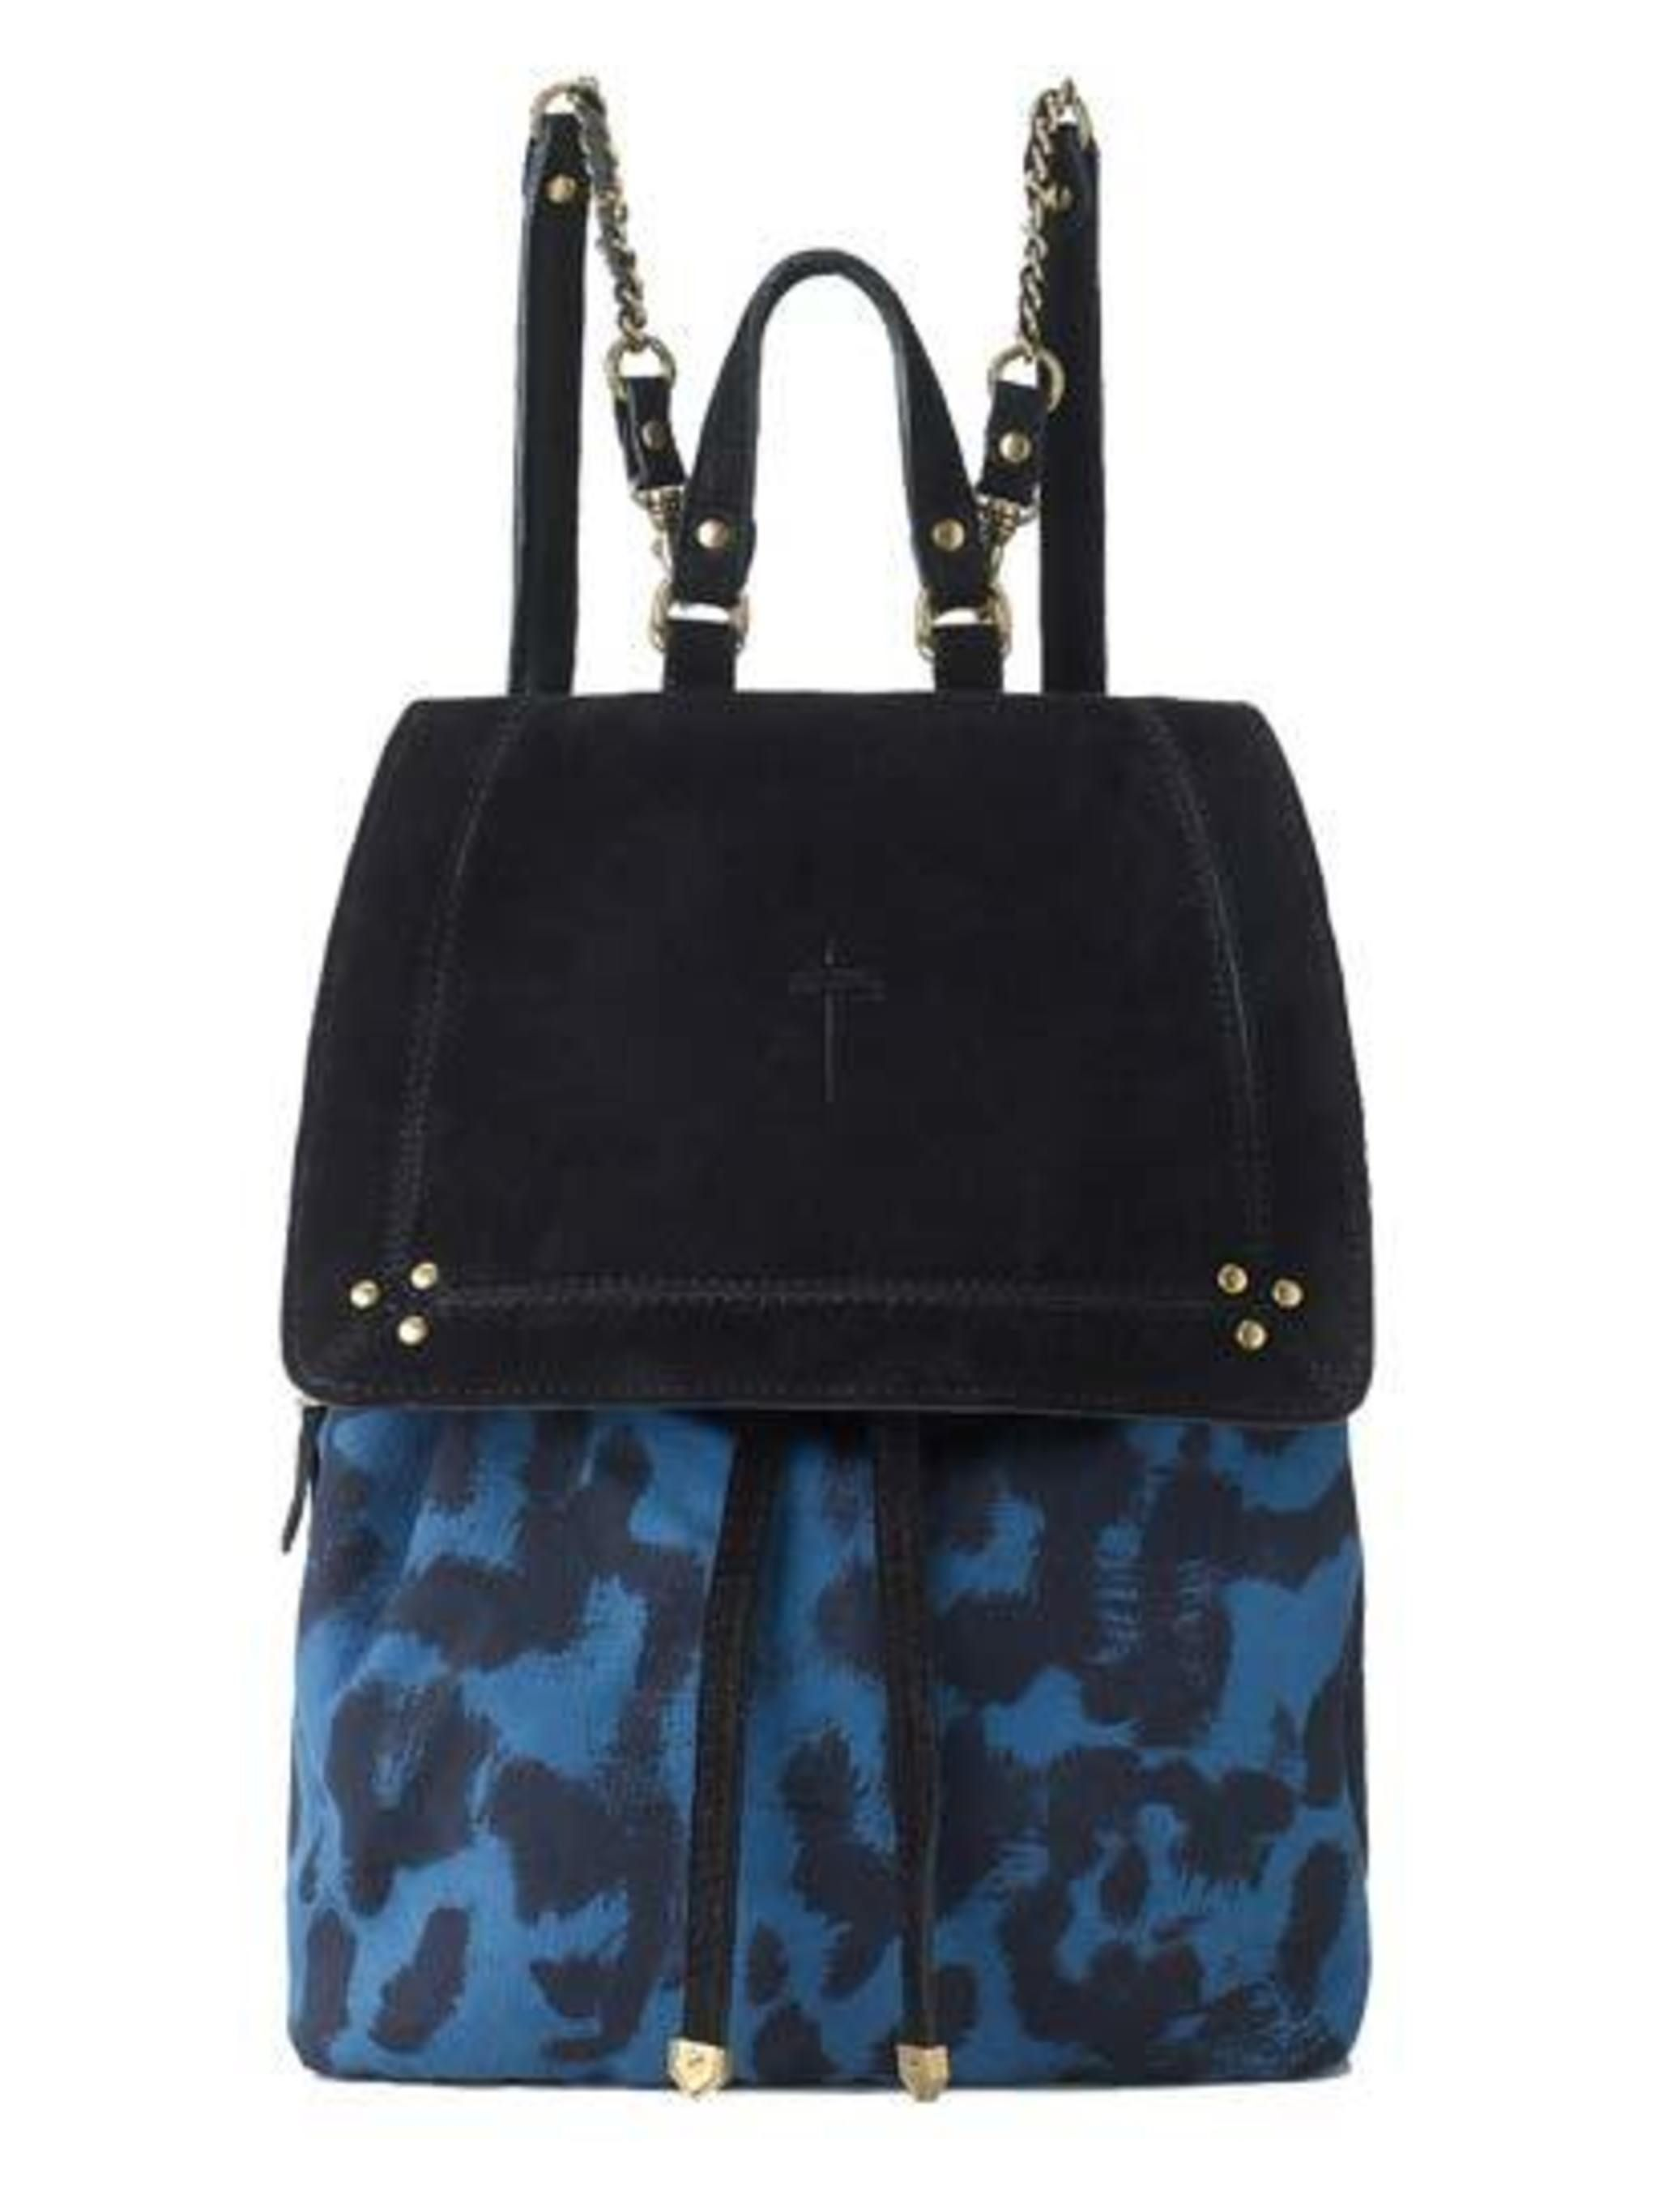 "<p>Who says a leopard can't change it's spots.. </p><p>Blue Leopard Backpack £310 by Jerome Dreyfuss at <a href=""http://www.avenue32.com/bags/all-bags/blue-leopard-florent-backpack-38501.html"">Avenue32</a></p>"